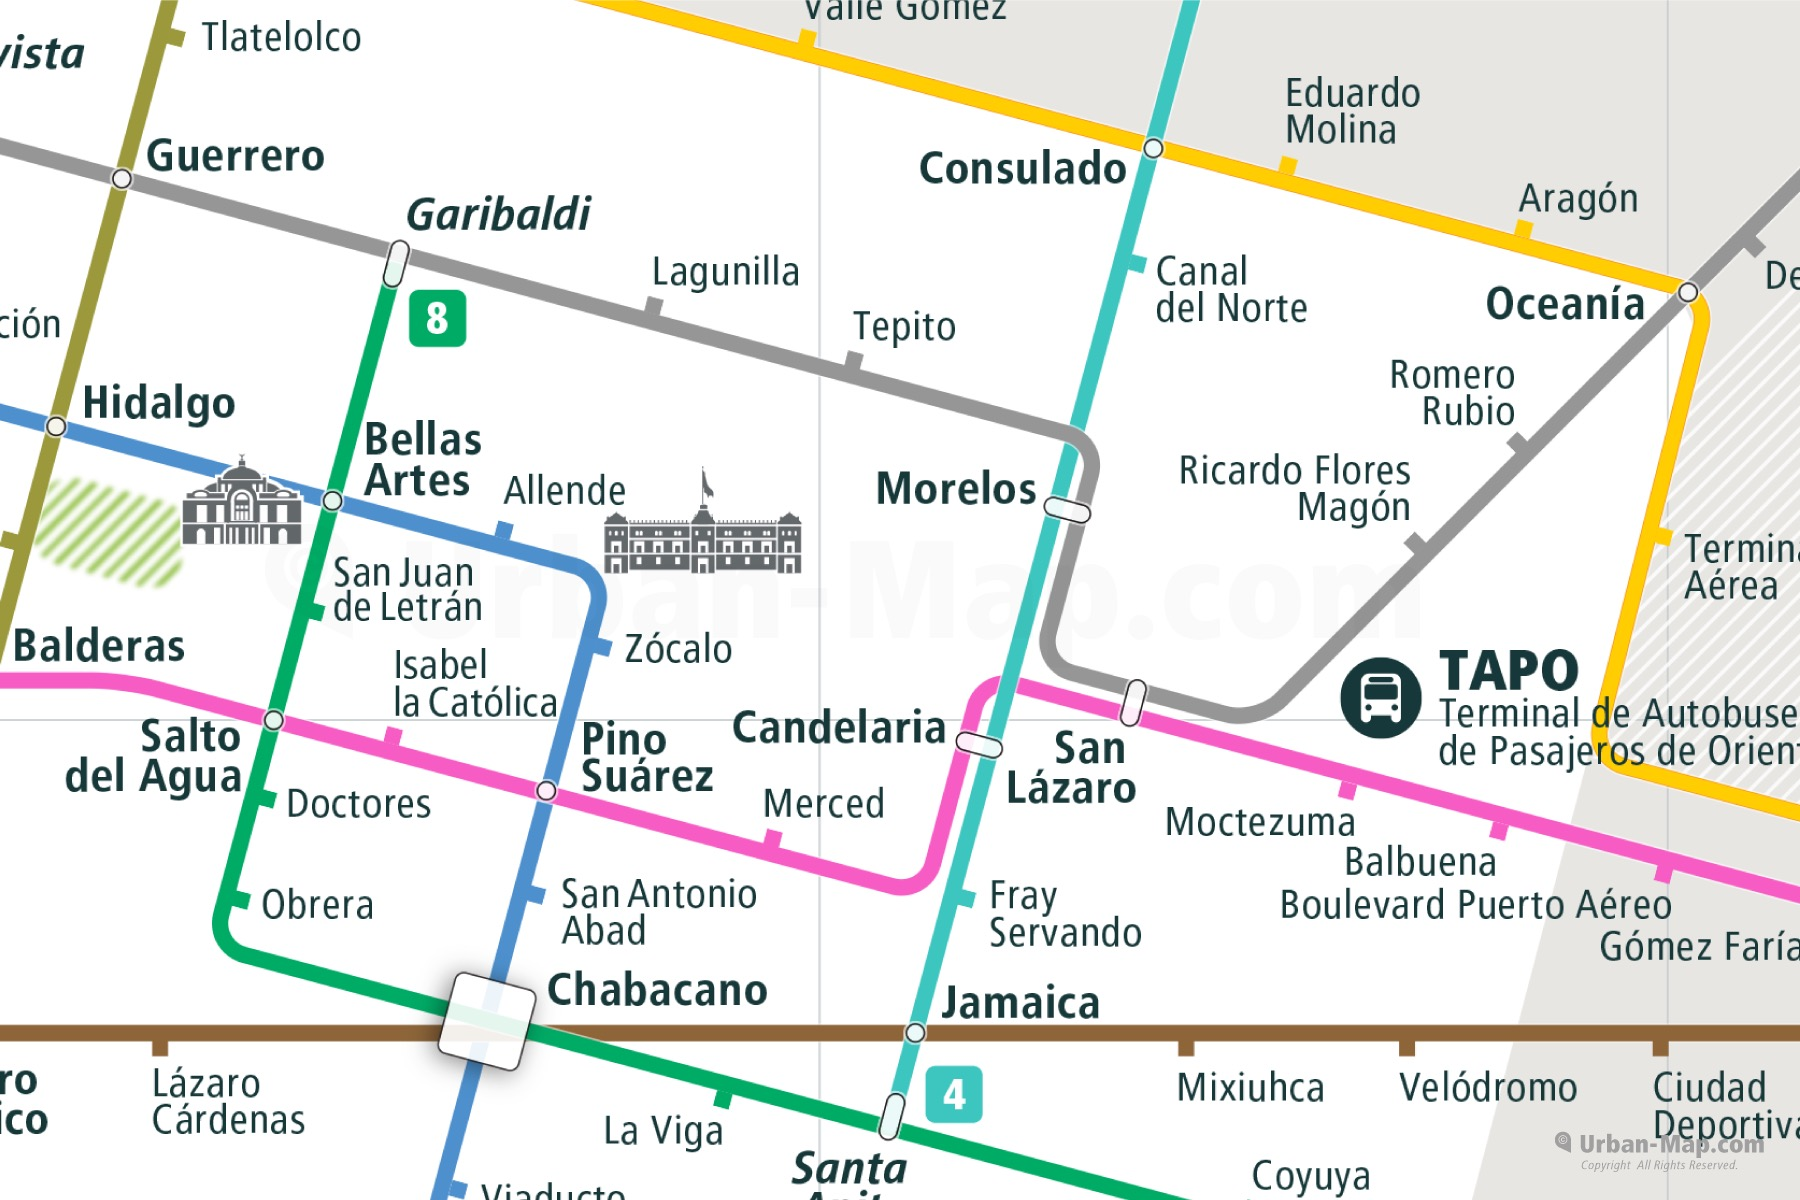 Mexico City Rail Map shows the train and public transportation routes of metro - Close-Up